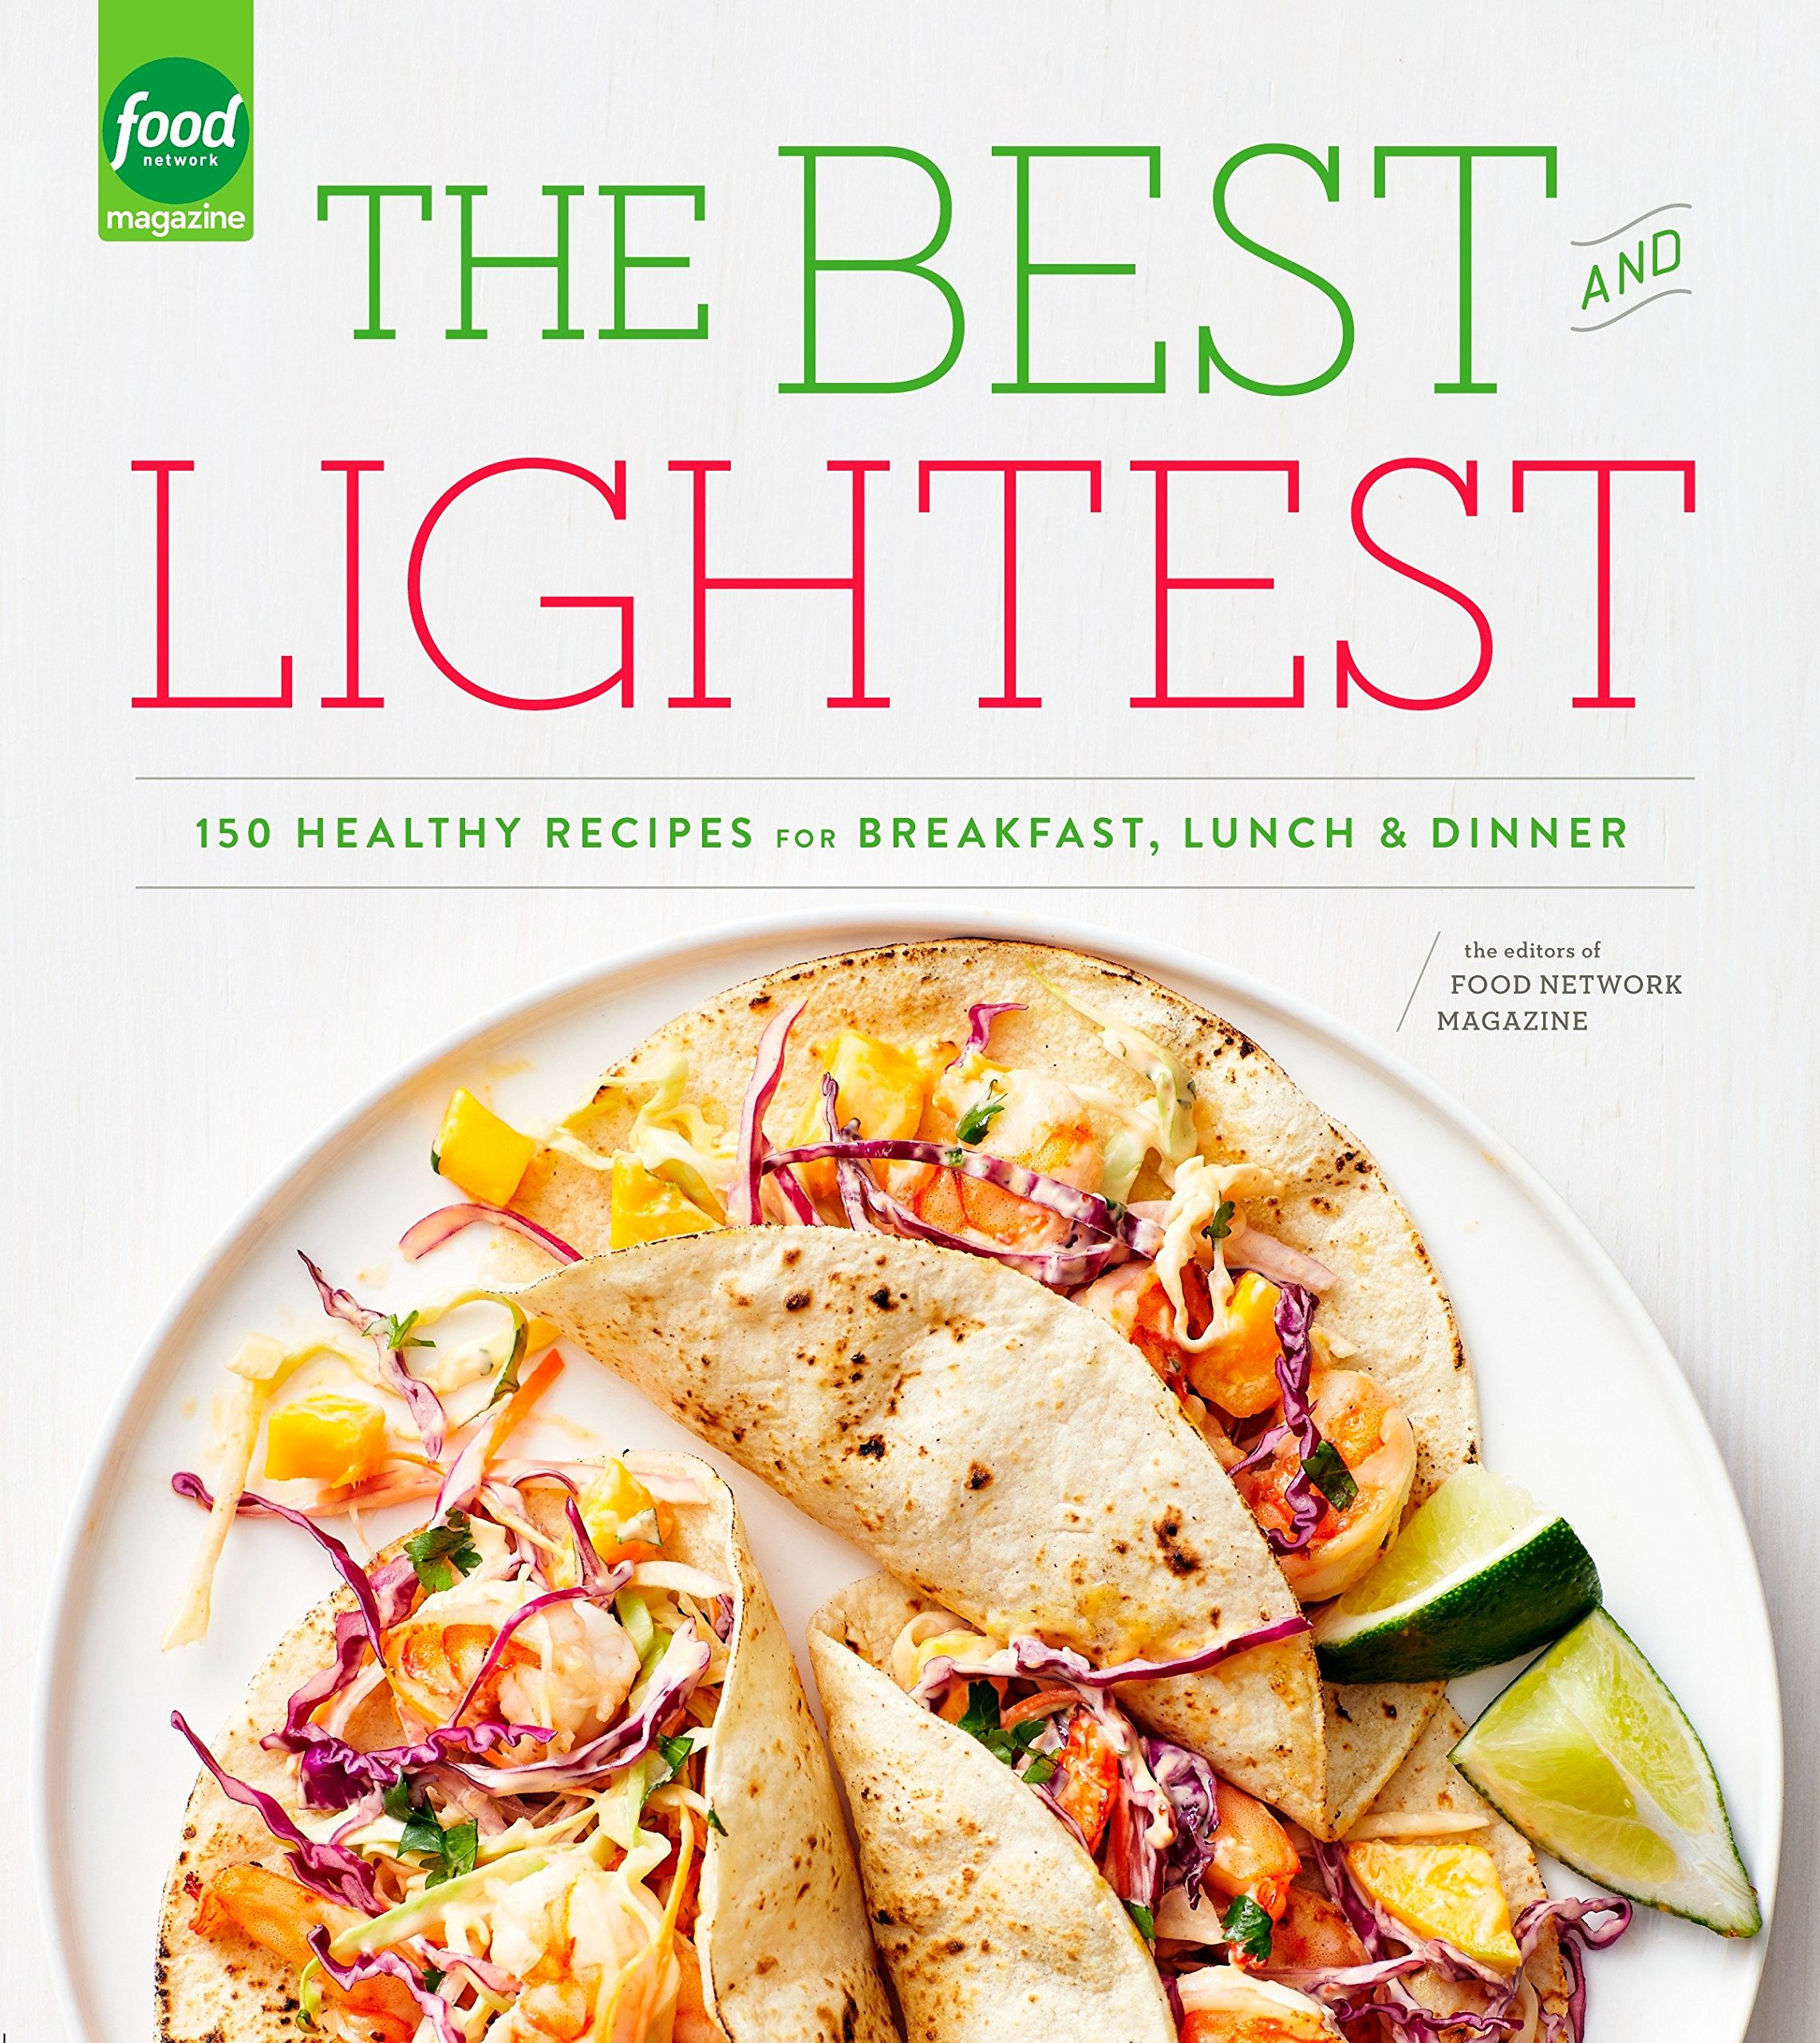 The best and lightest 150 healthy recipes for breakfast lunch and the best and lightest 150 healthy recipes for breakfast lunch and dinner editors of food network magazine 9780804185349 amazon books forumfinder Image collections